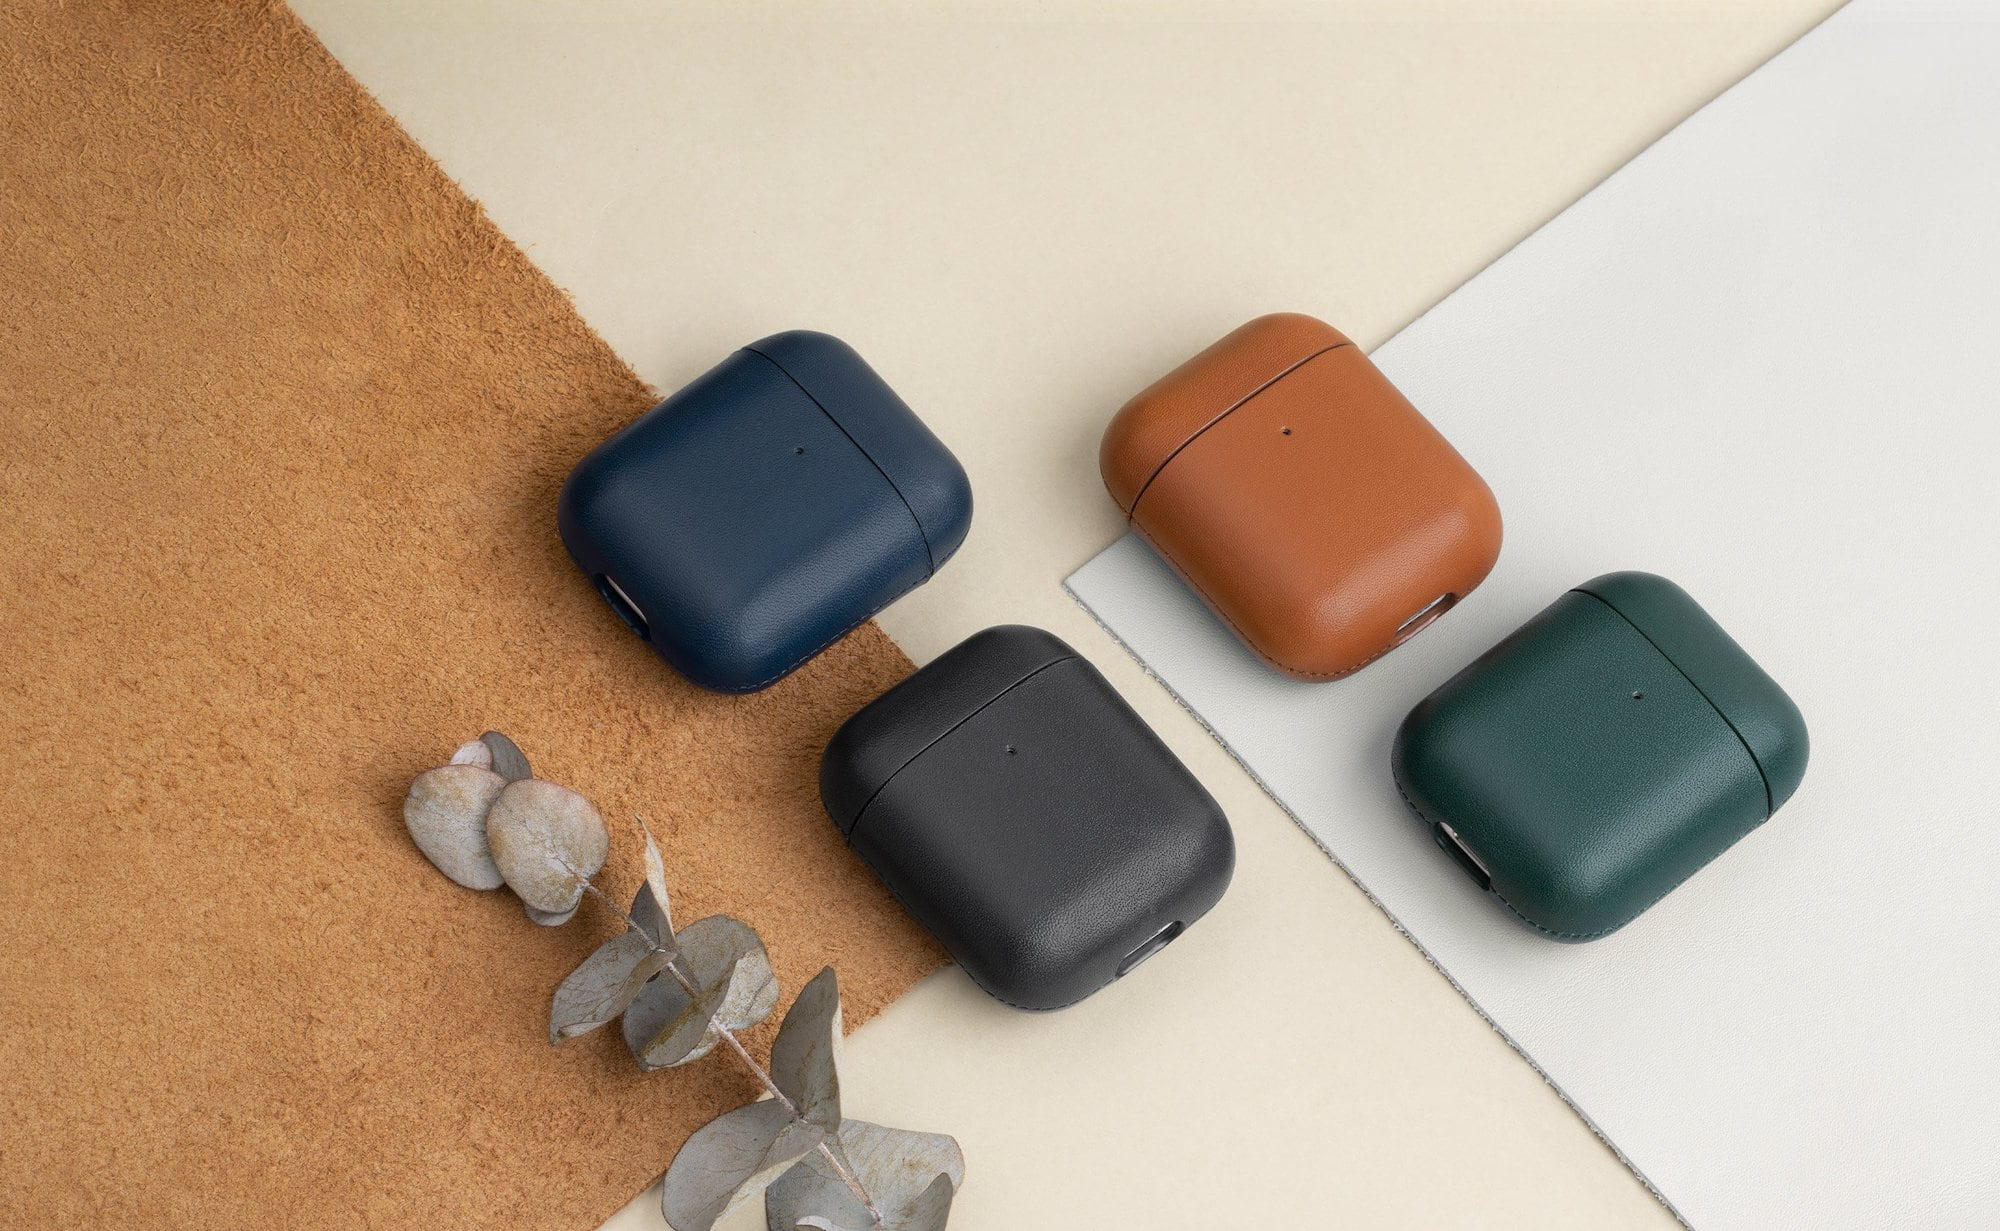 The fully wrapped leather airpods case is on a table.